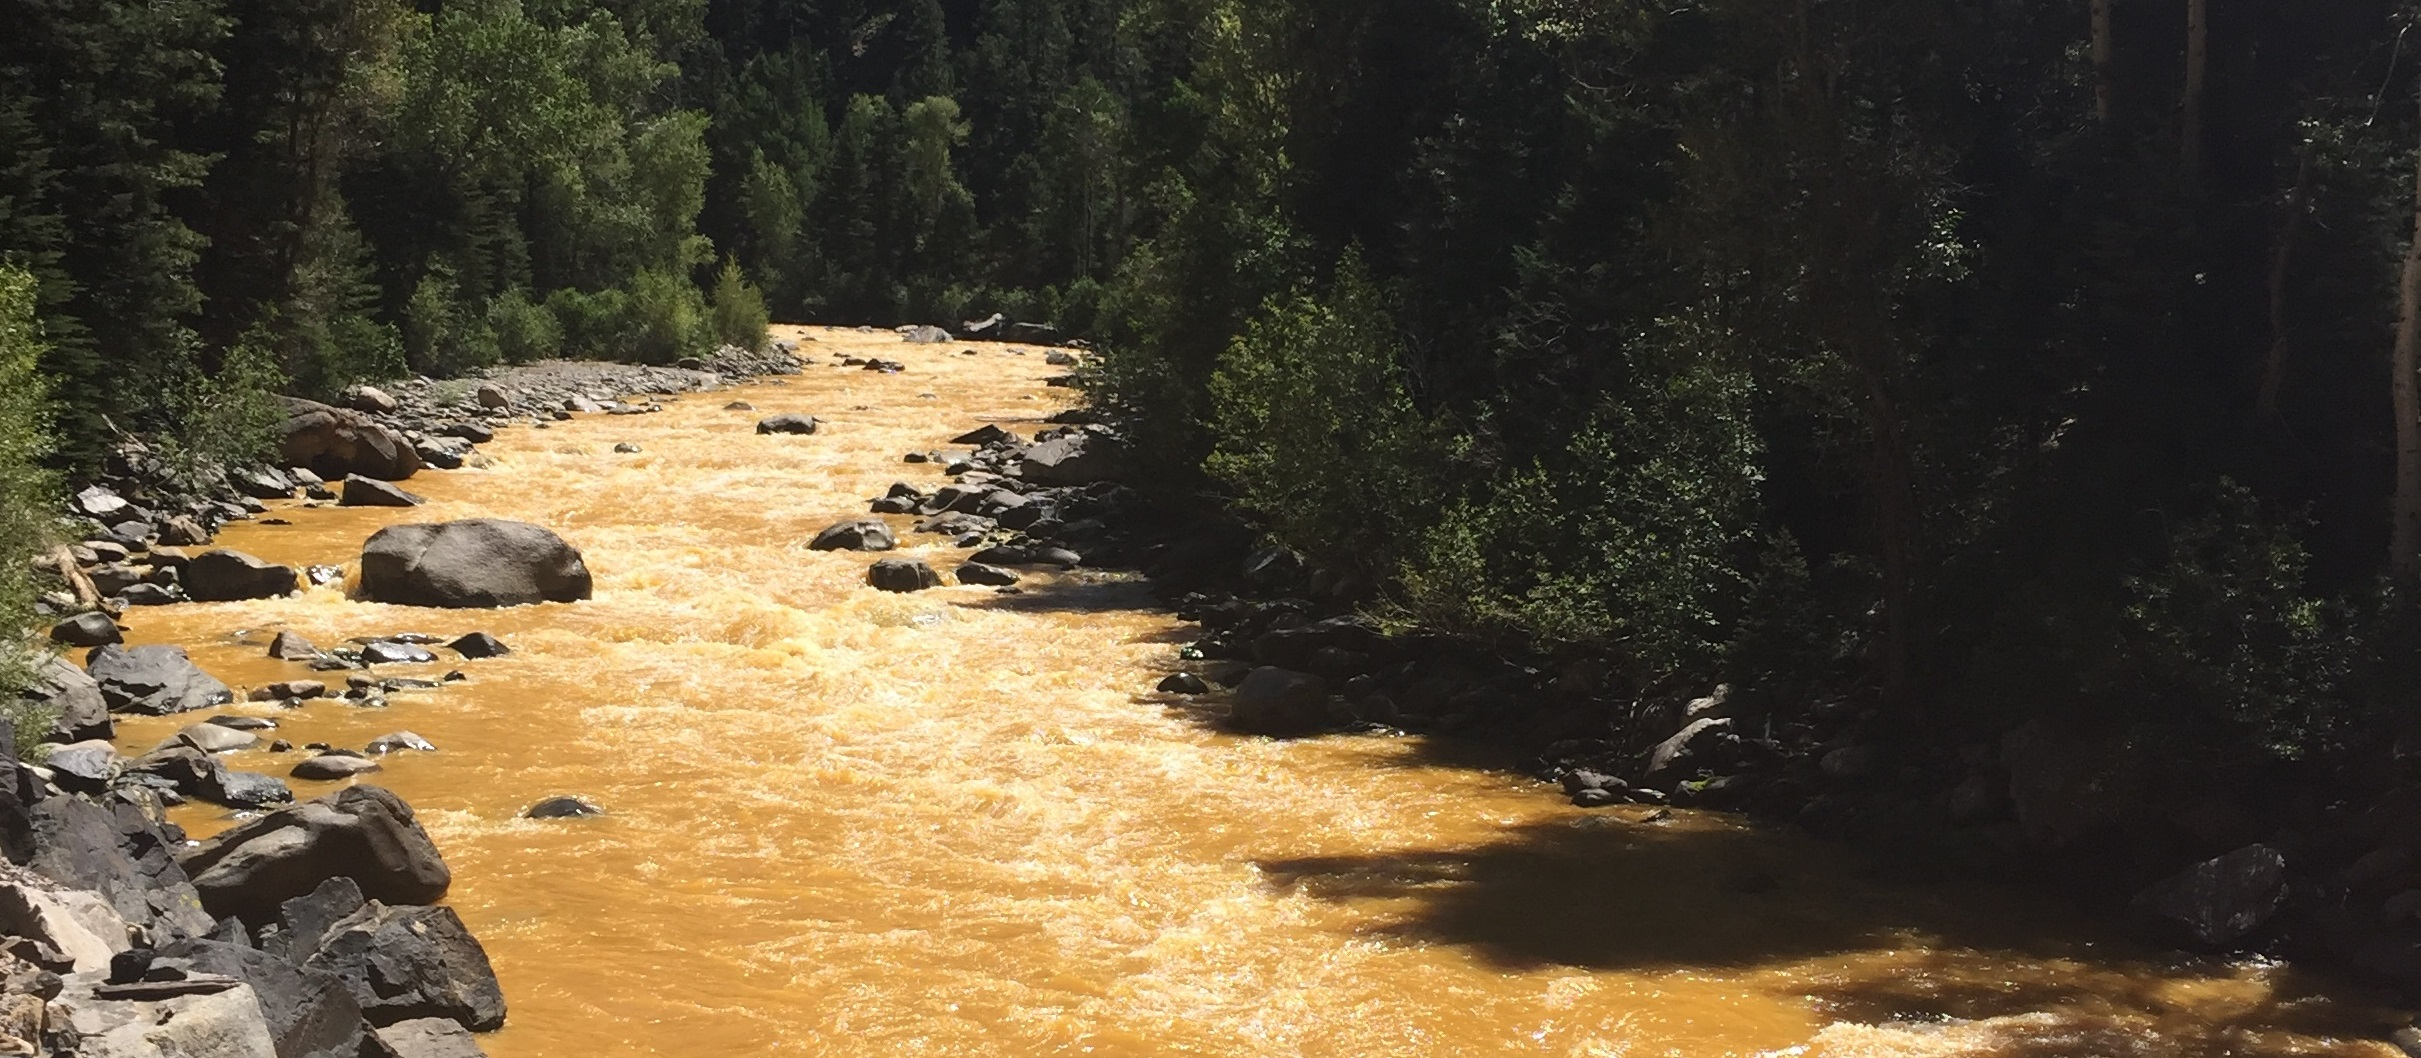 Animas_River_spill_2015-08-06_crop